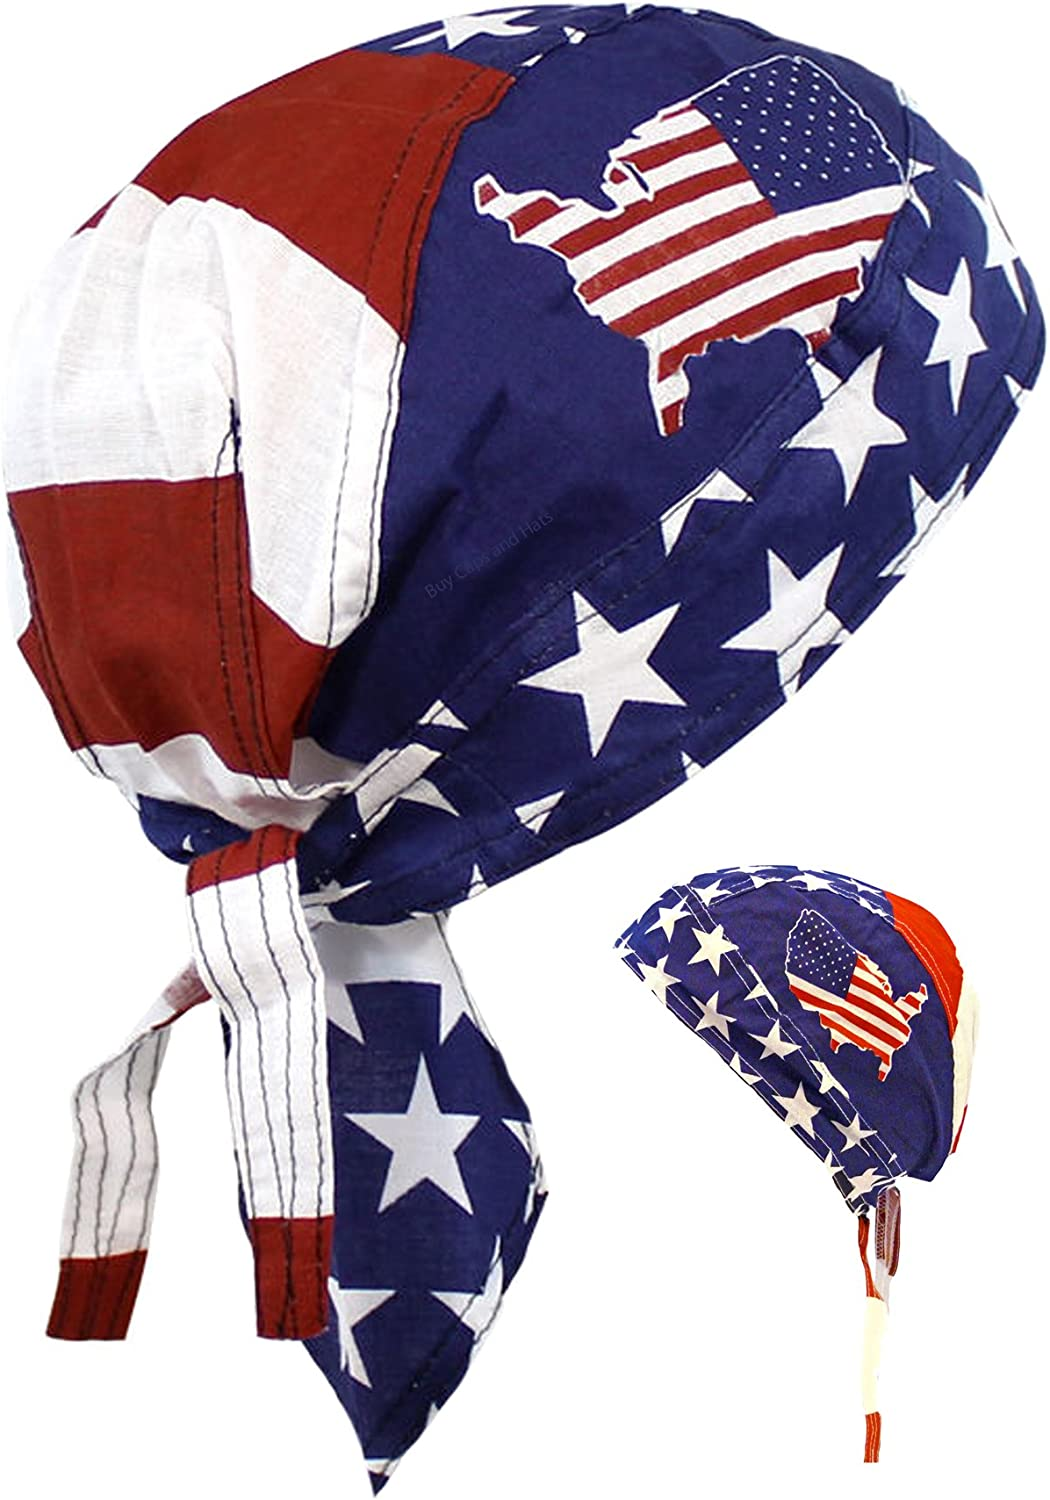 AMERICAN FLAG with American Made Cotton Fabric Mens Dorag or Womens Do Rag Spend 50 bucks get Free Shipping use code SPEND50